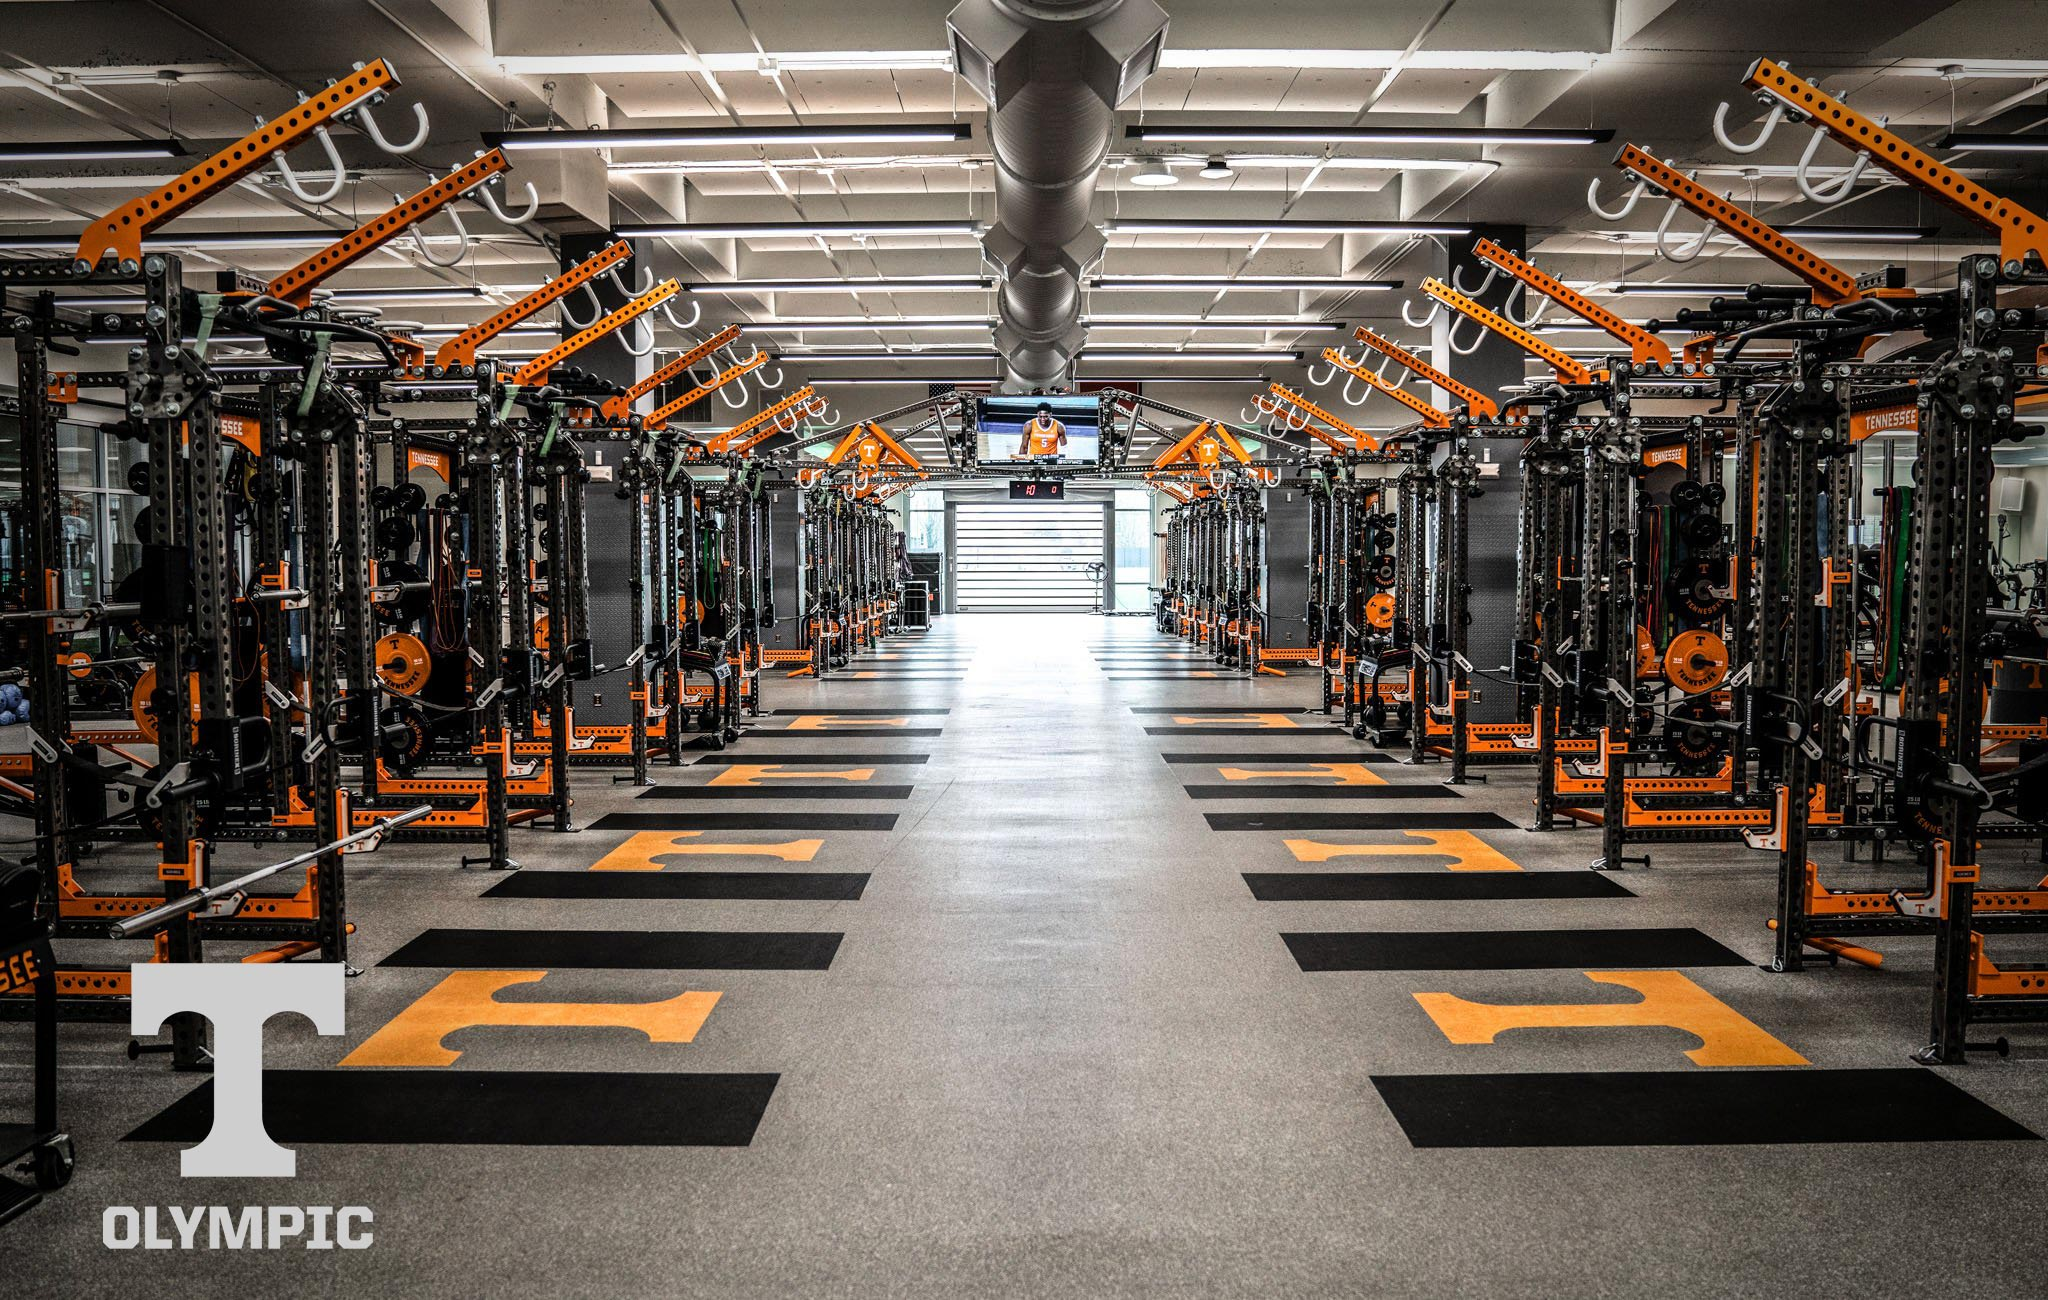 University of Tennessee Olympic Sorinex strength and conditioning facility